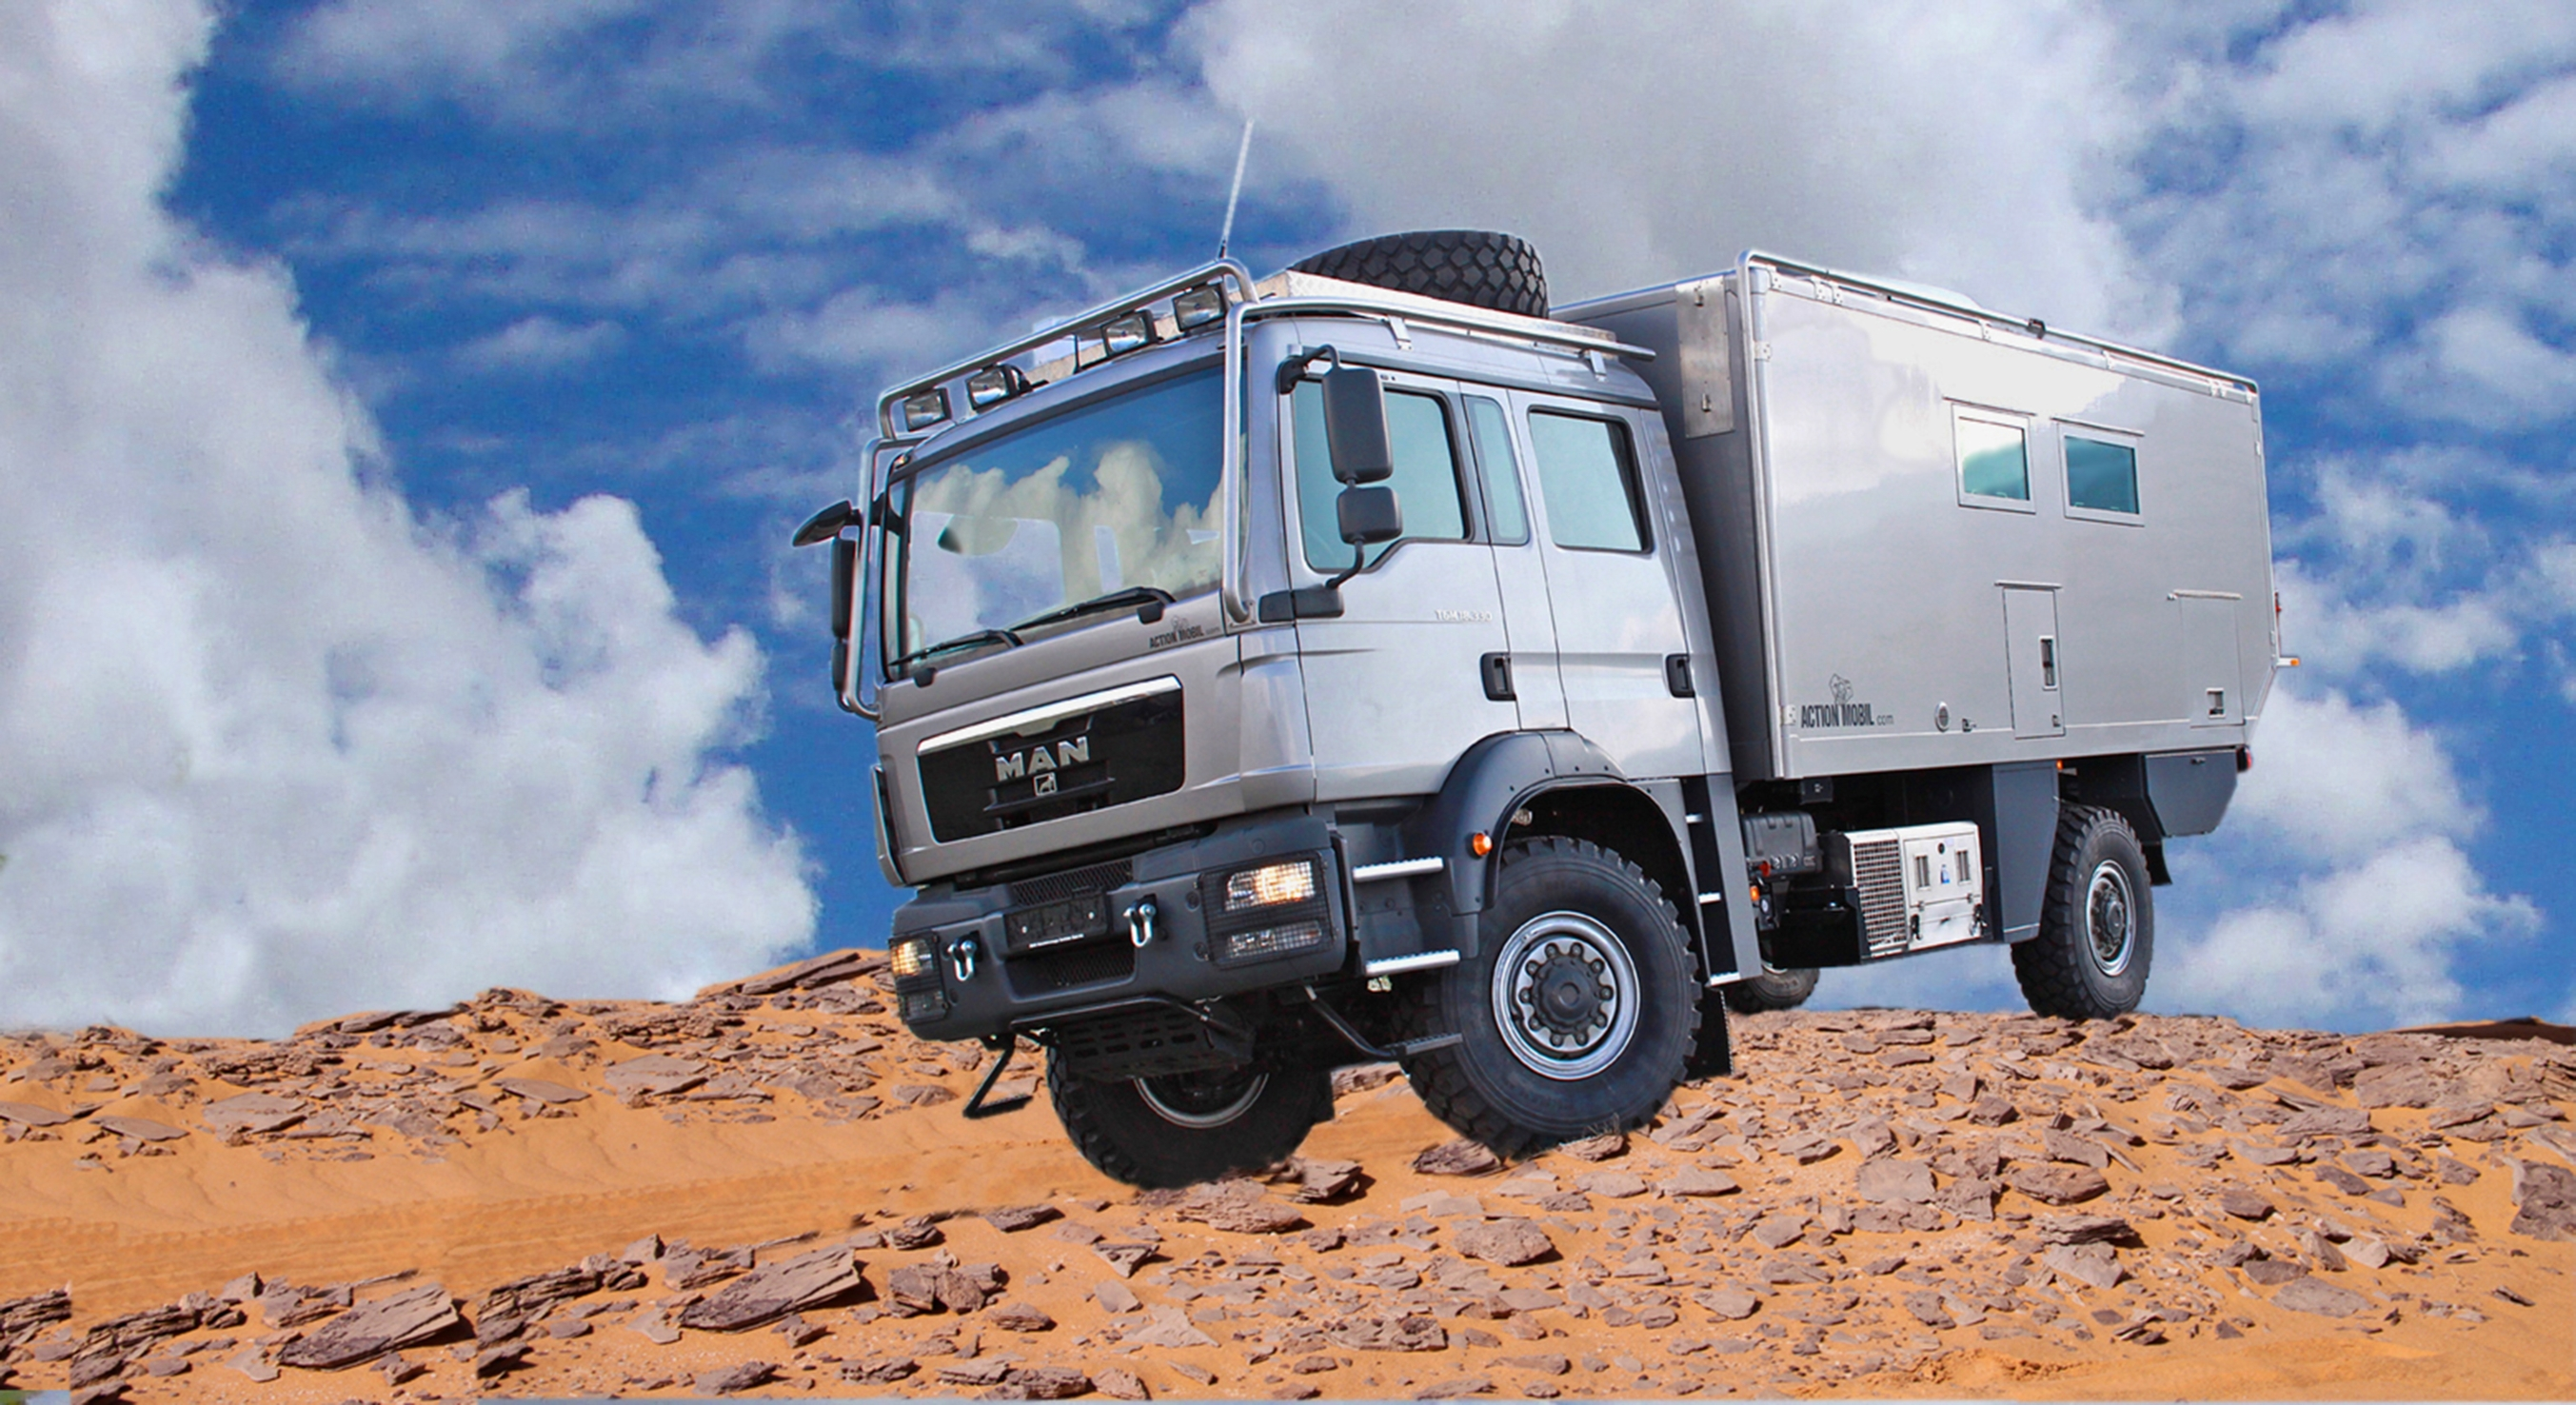 The Action Mobil Atacama 7900 Expedition Vehicle with Built-in Garage is All You Need In Case of Armageddon